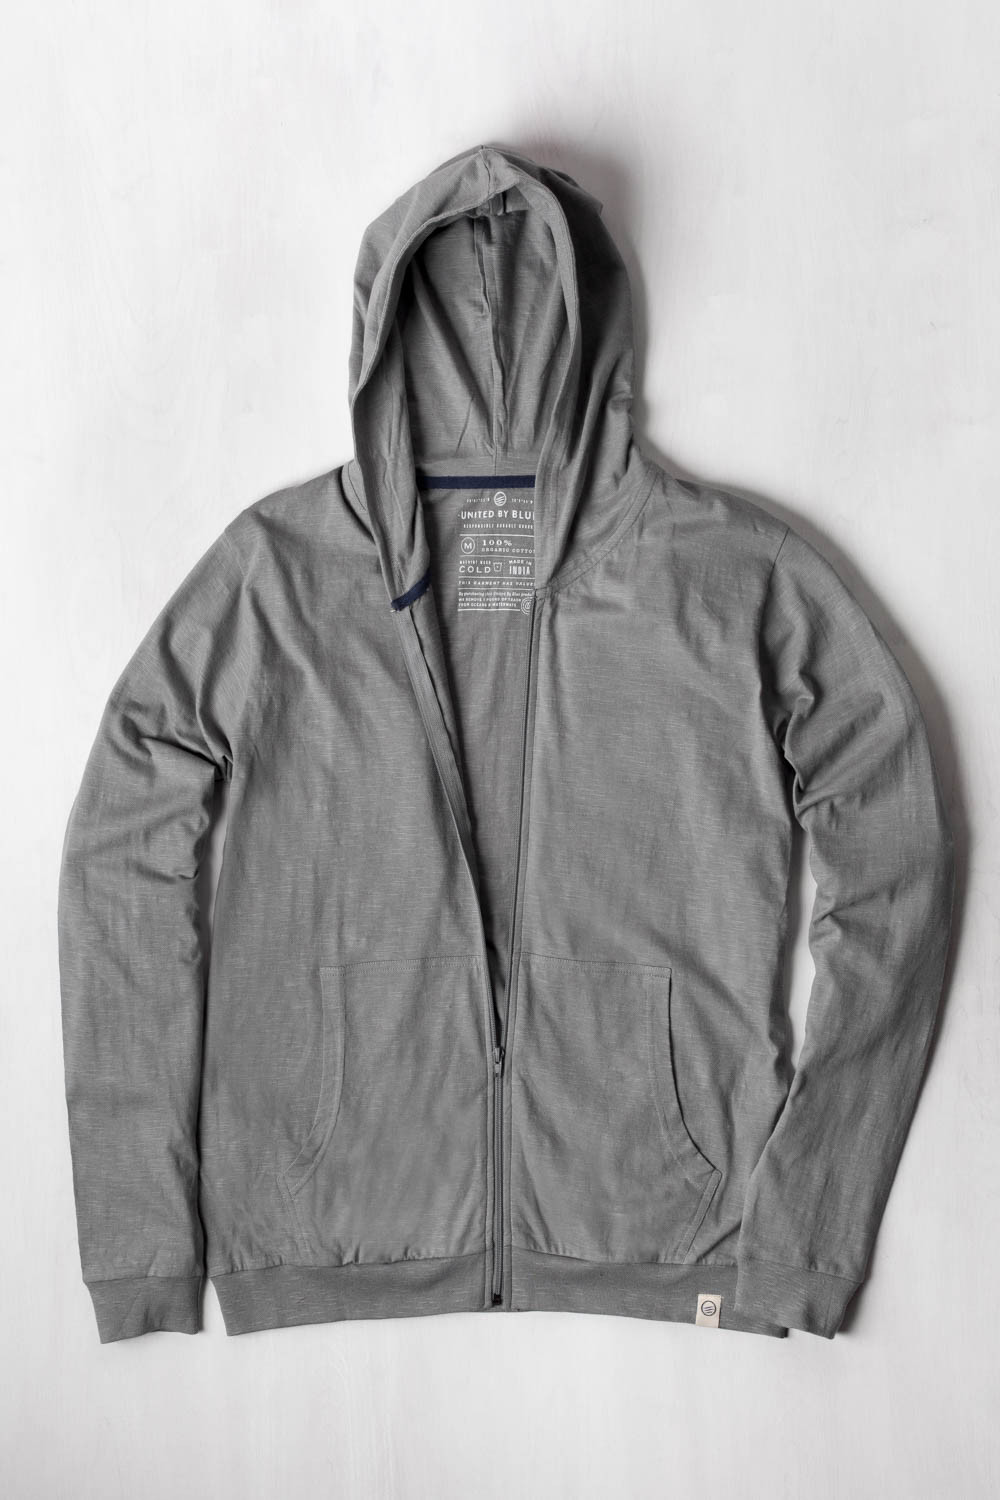 Jonathan Ellsworth reviews the United by Blue Men's Standard Zip Hoodie for Blister Gear Review